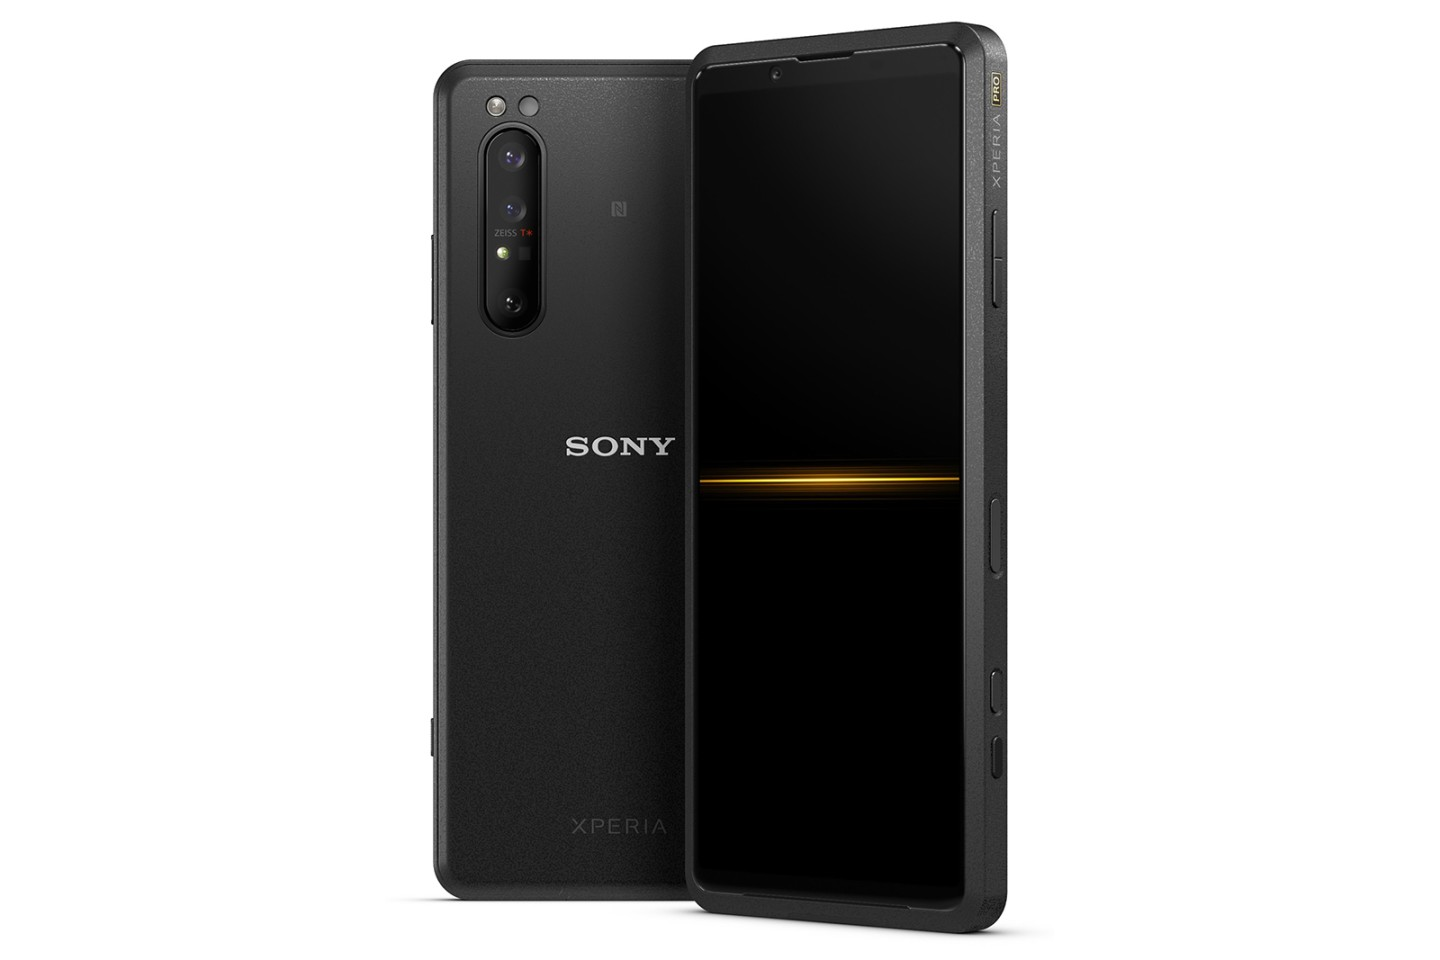 The Xperia Pro is based on the Xperia 1 Mark II launched last year